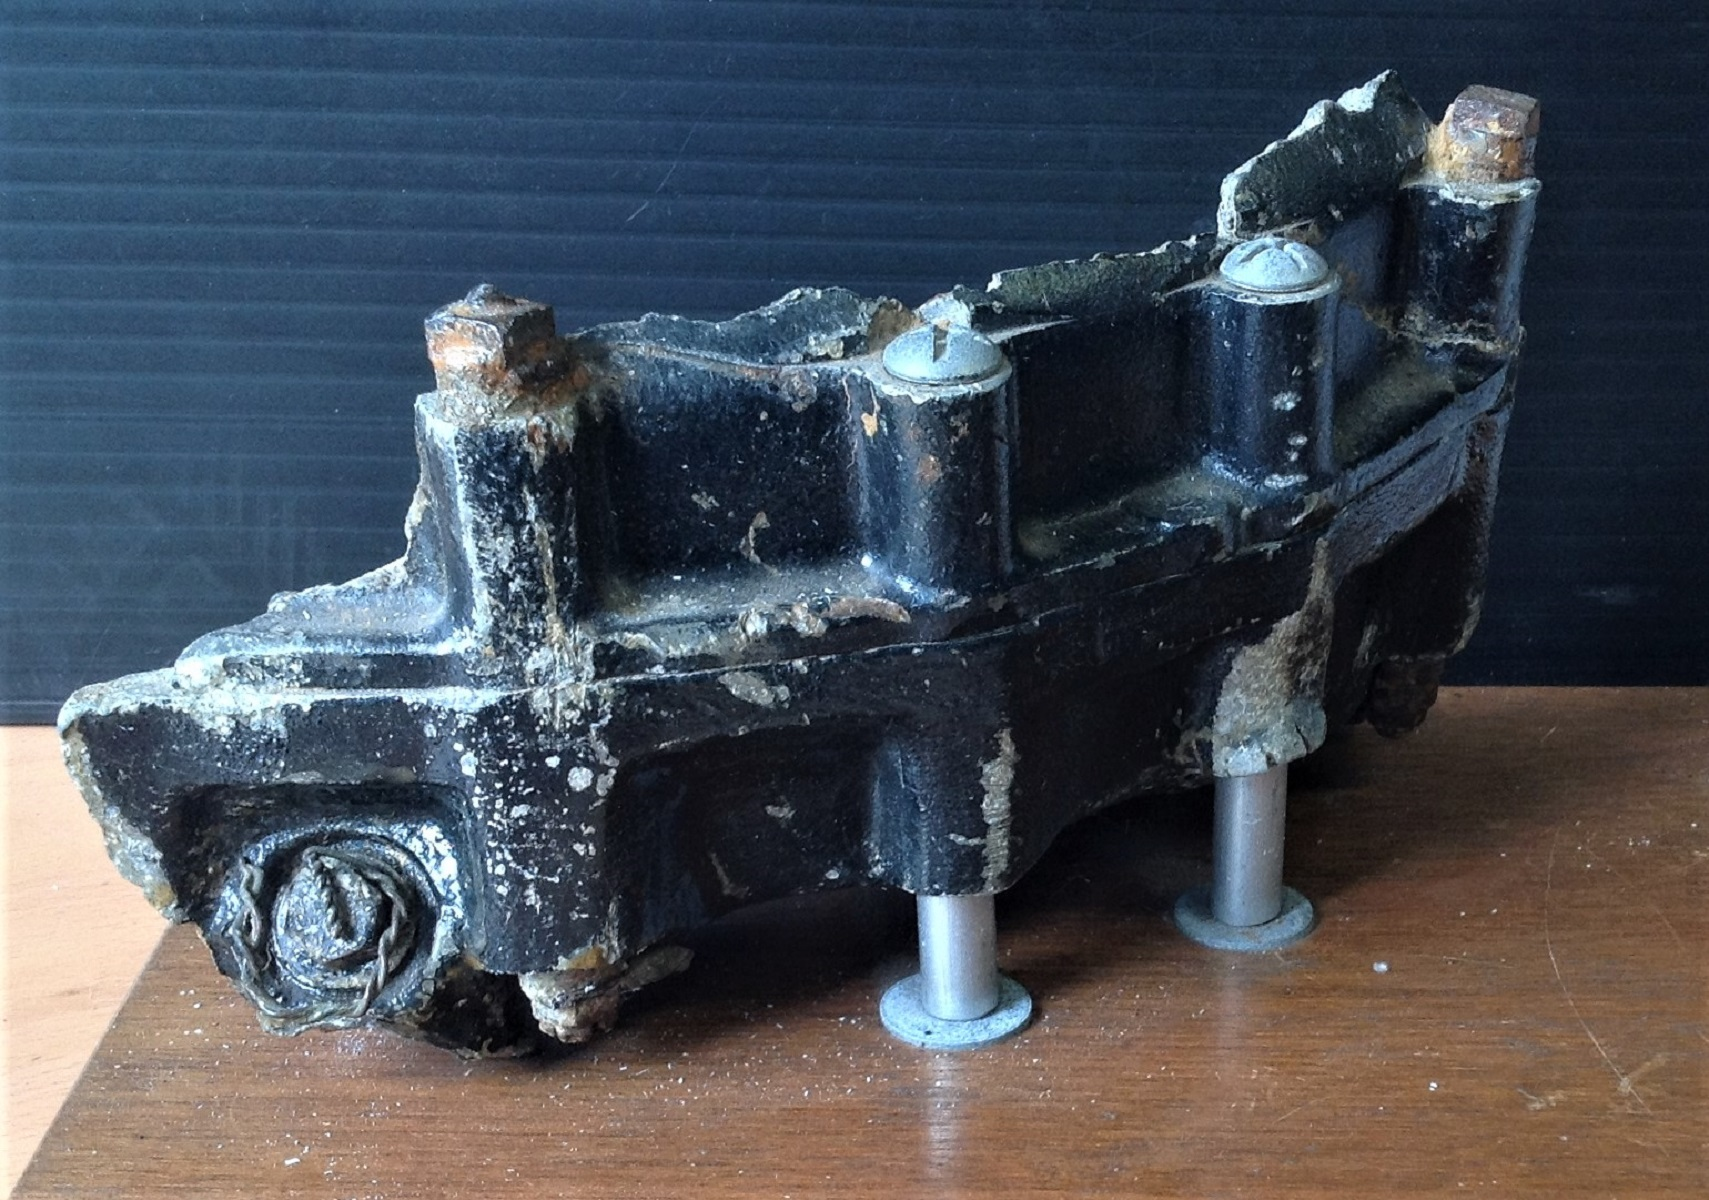 Dambuster relic, Large piece of the gear box from the Lancaster of John Vere Hopgood, DFC & Bar,